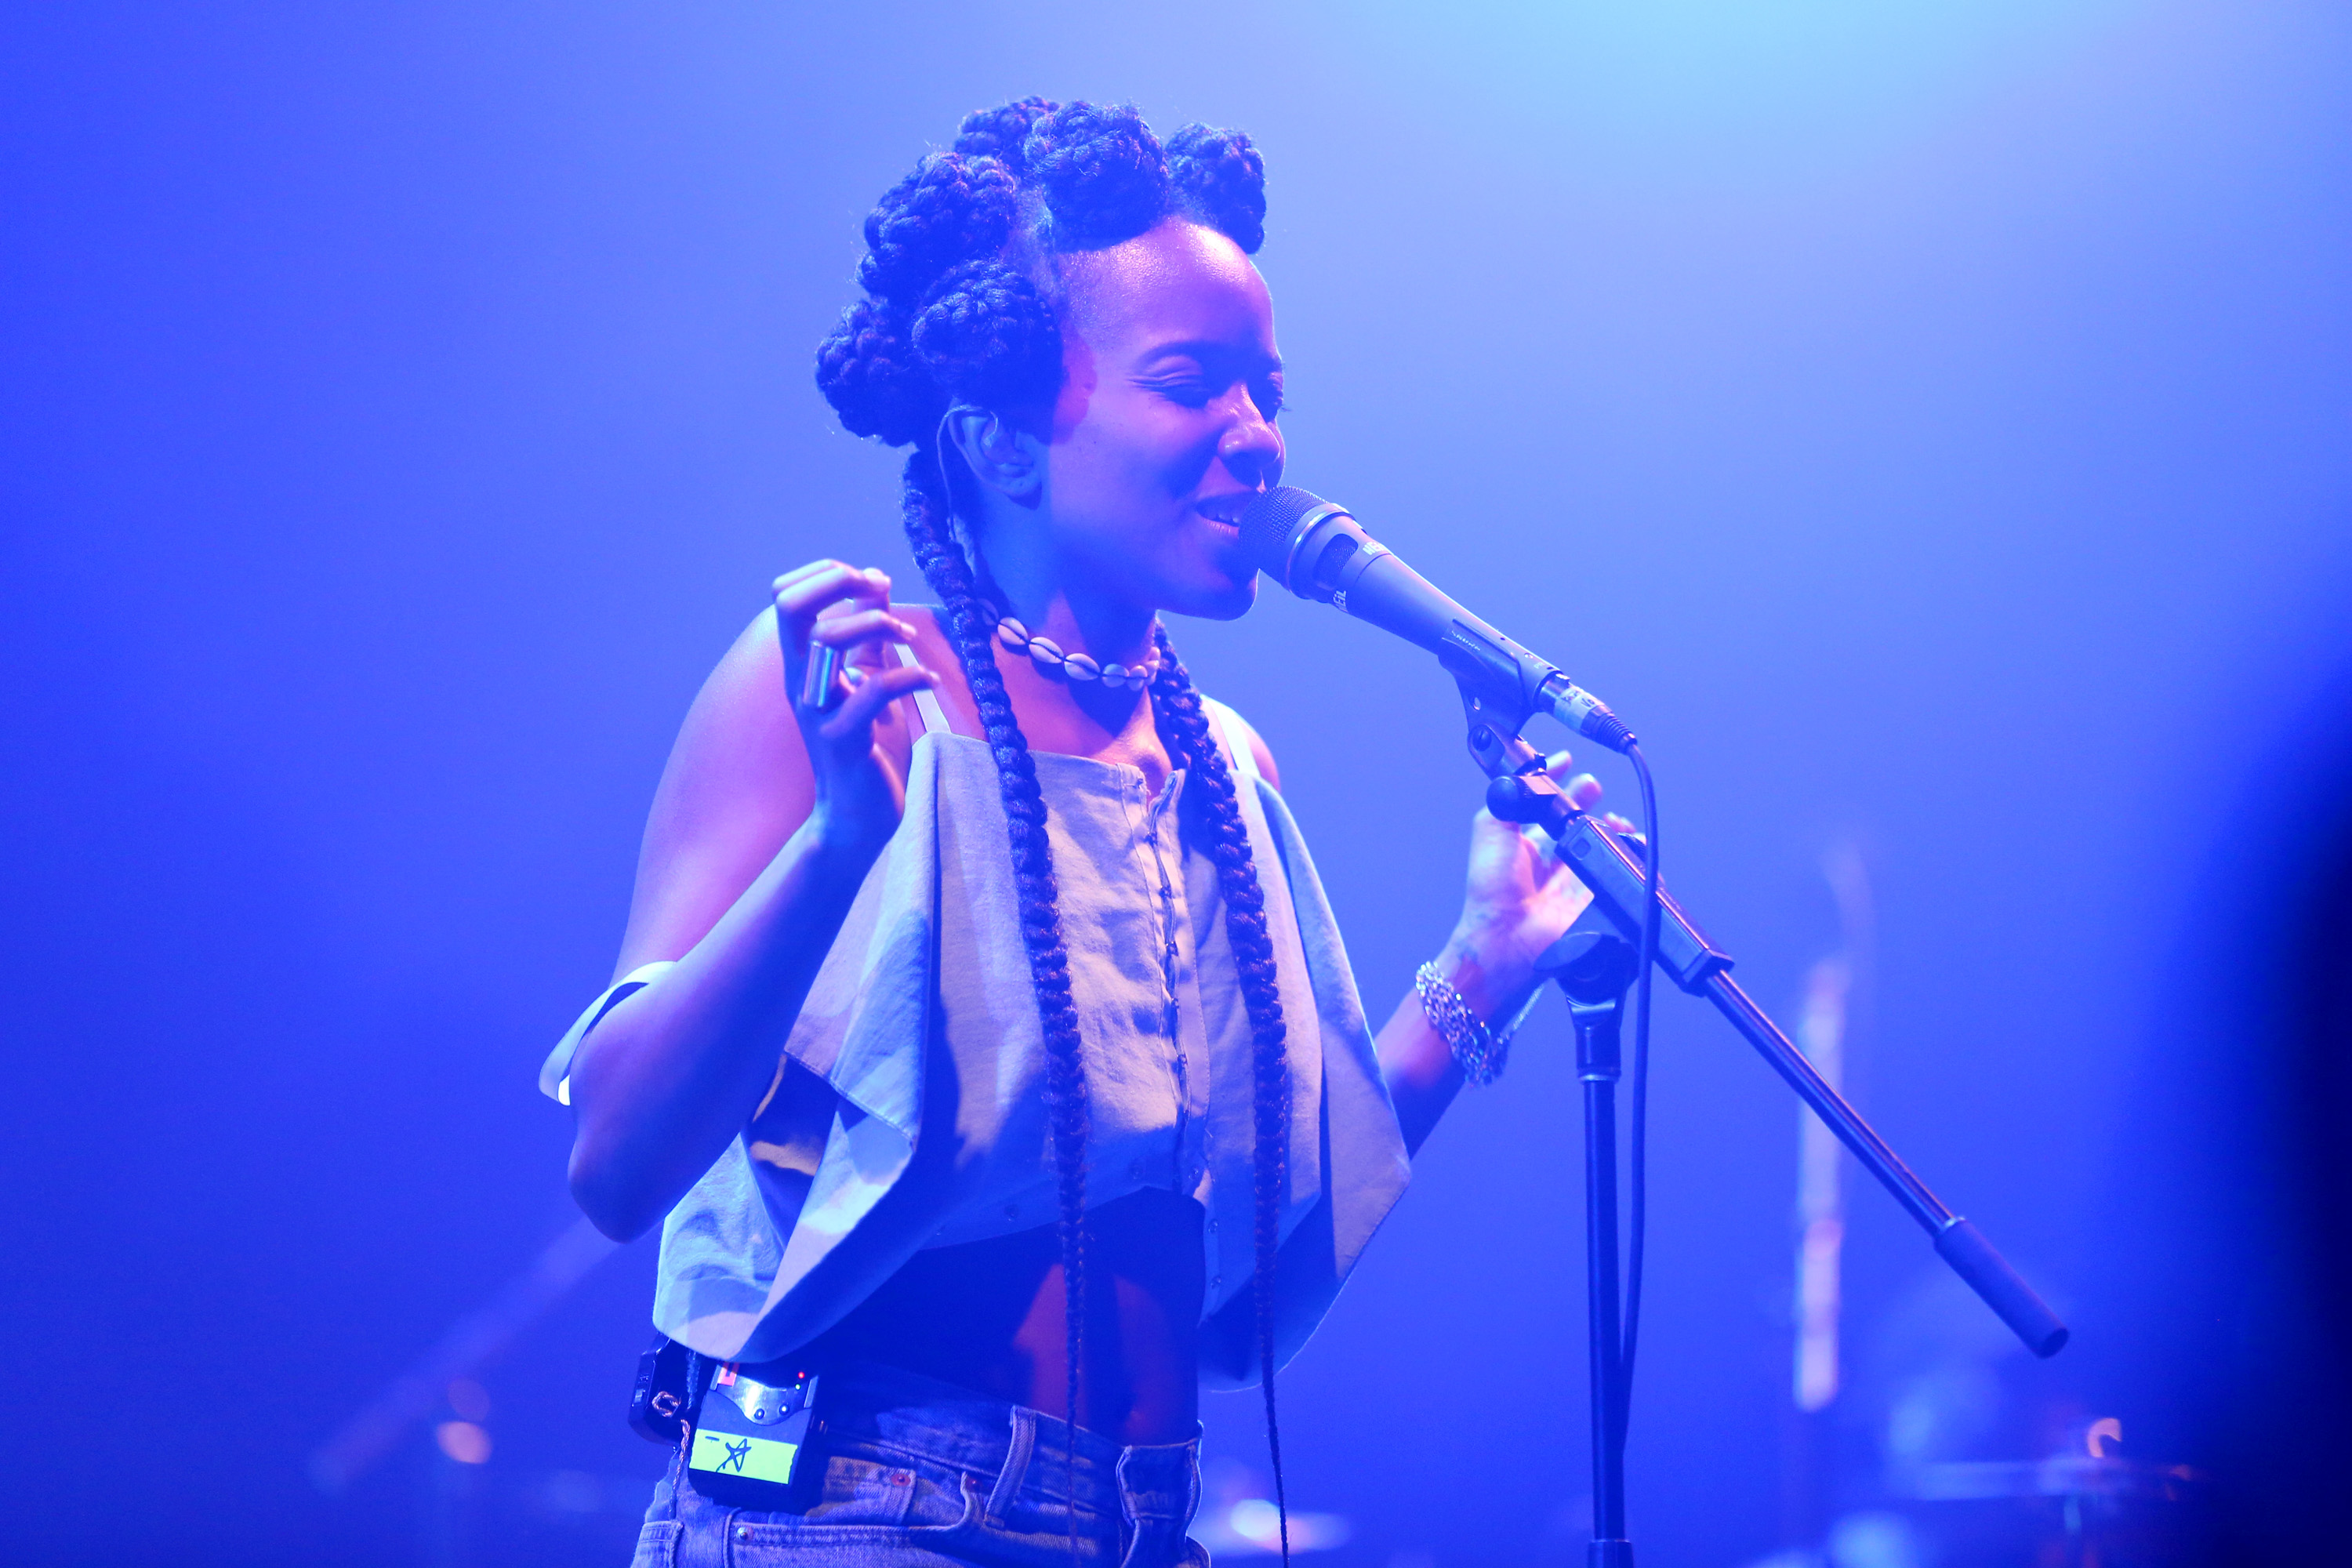 Singer Jamila Woods performs onstage during the 2017 Panorama Music Festival at Randall's Island in New York City.